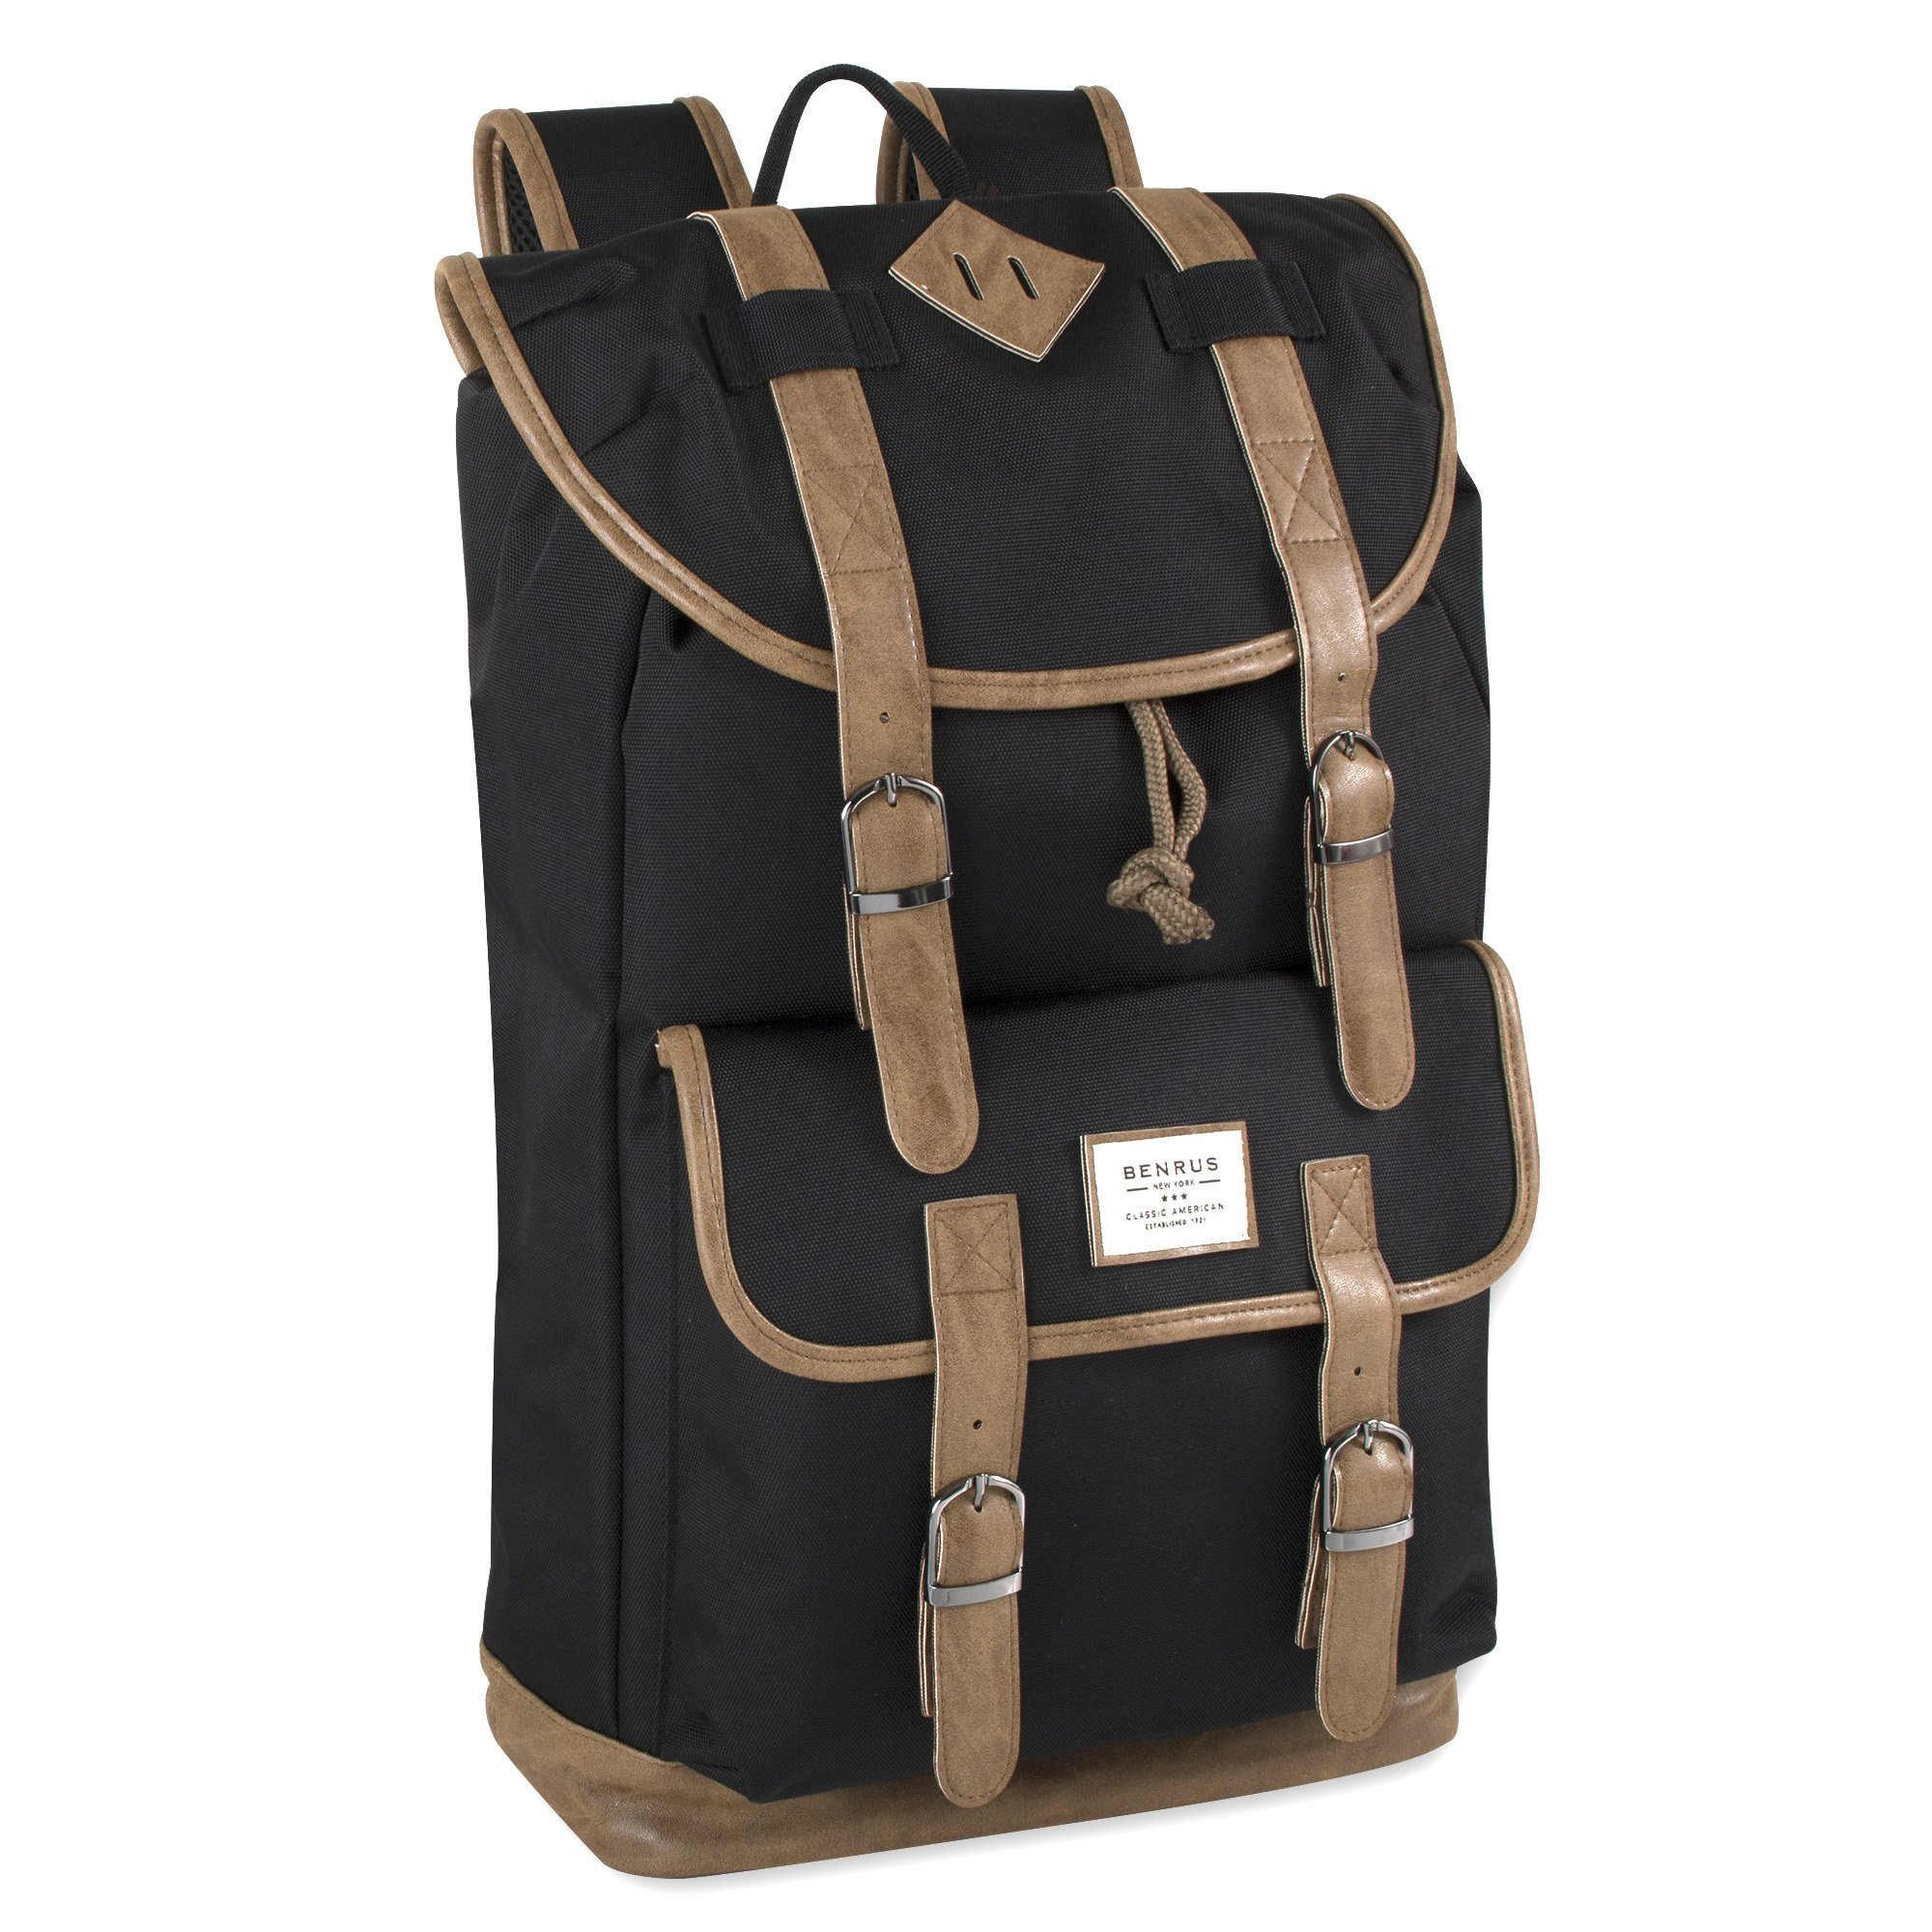 Benrus Drawstring and Flap Multi Pocket Scout Black Canvas Backpack for Outdoors, Hiking, Camping, and Travel - For Men and Boys